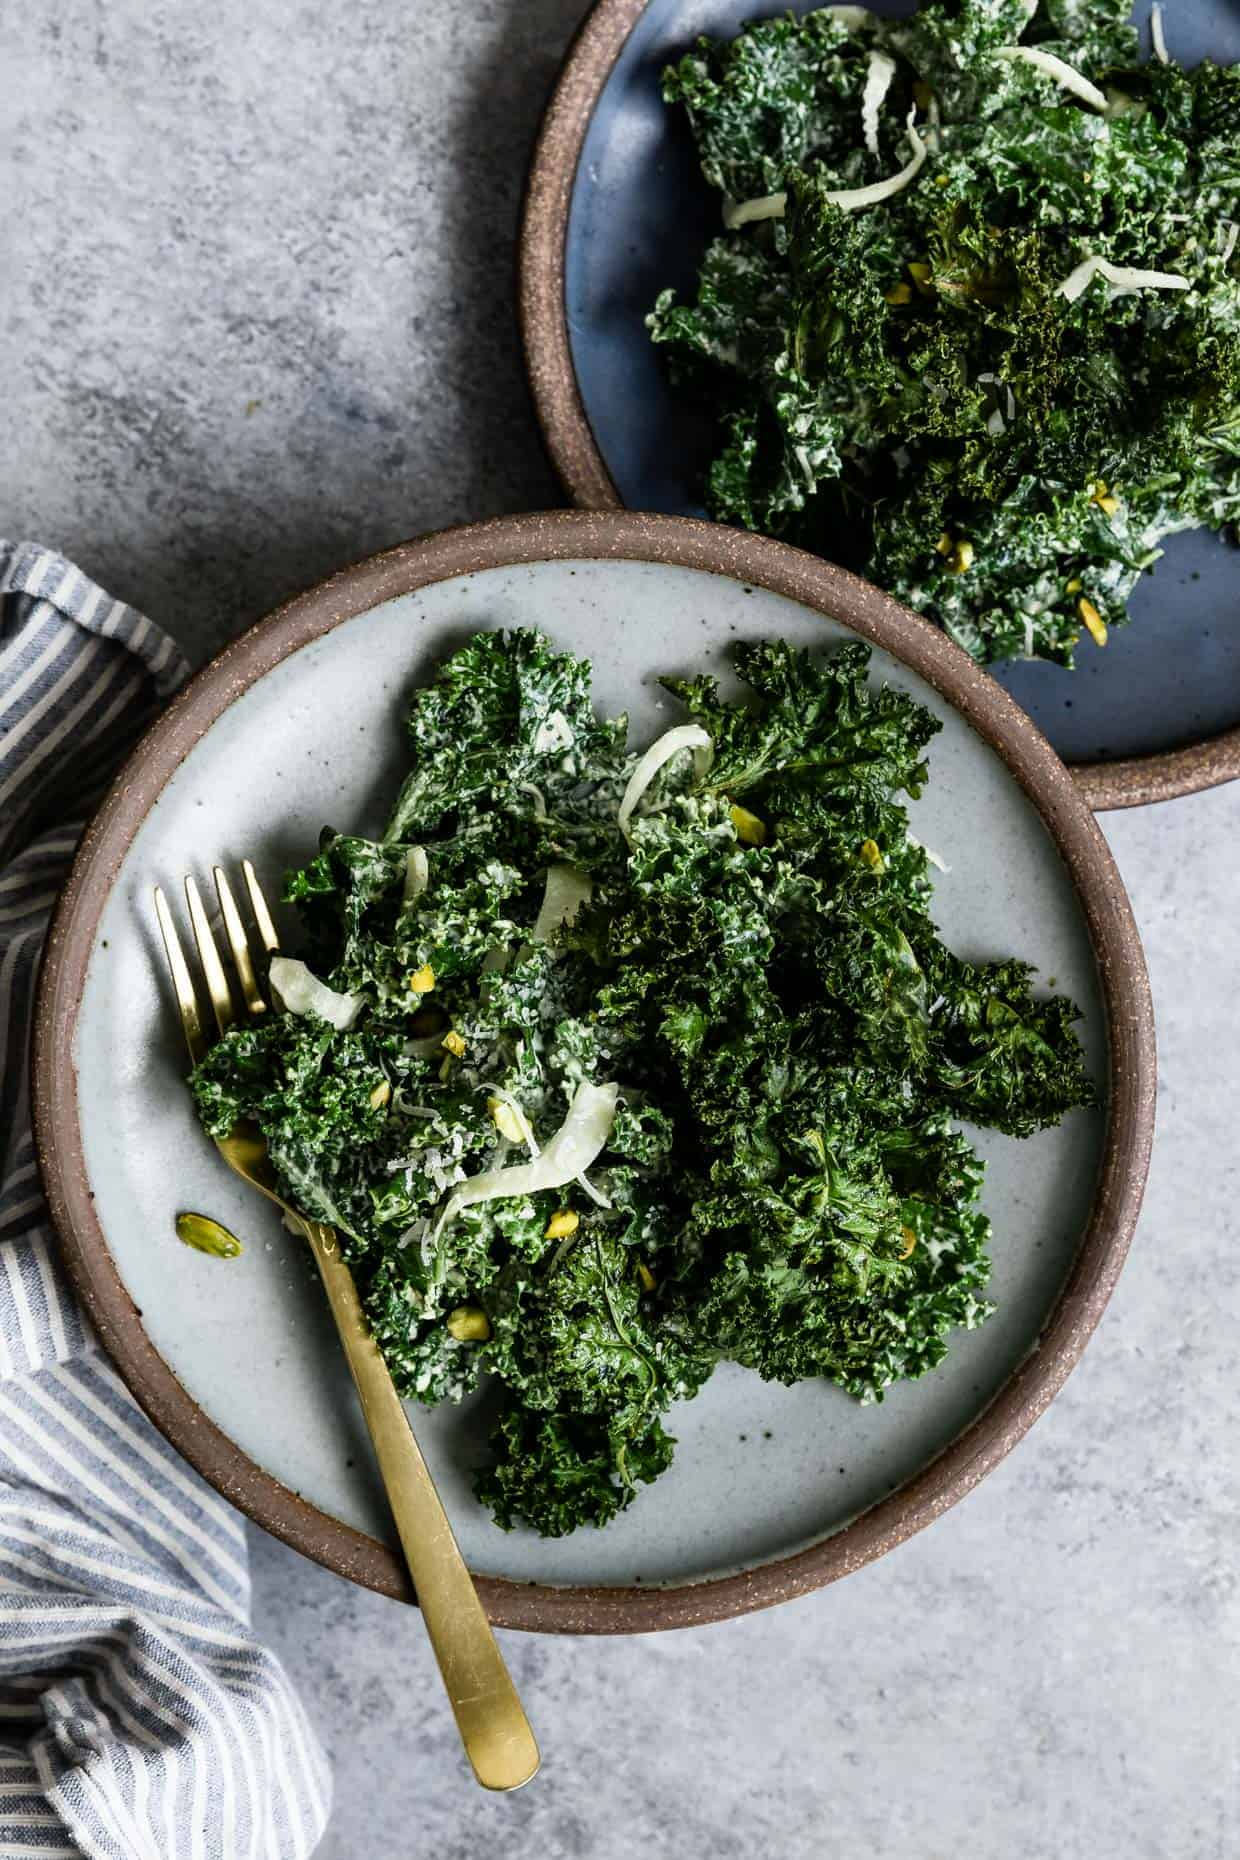 Double Kale Salad with Creamy Pistachio Dressing